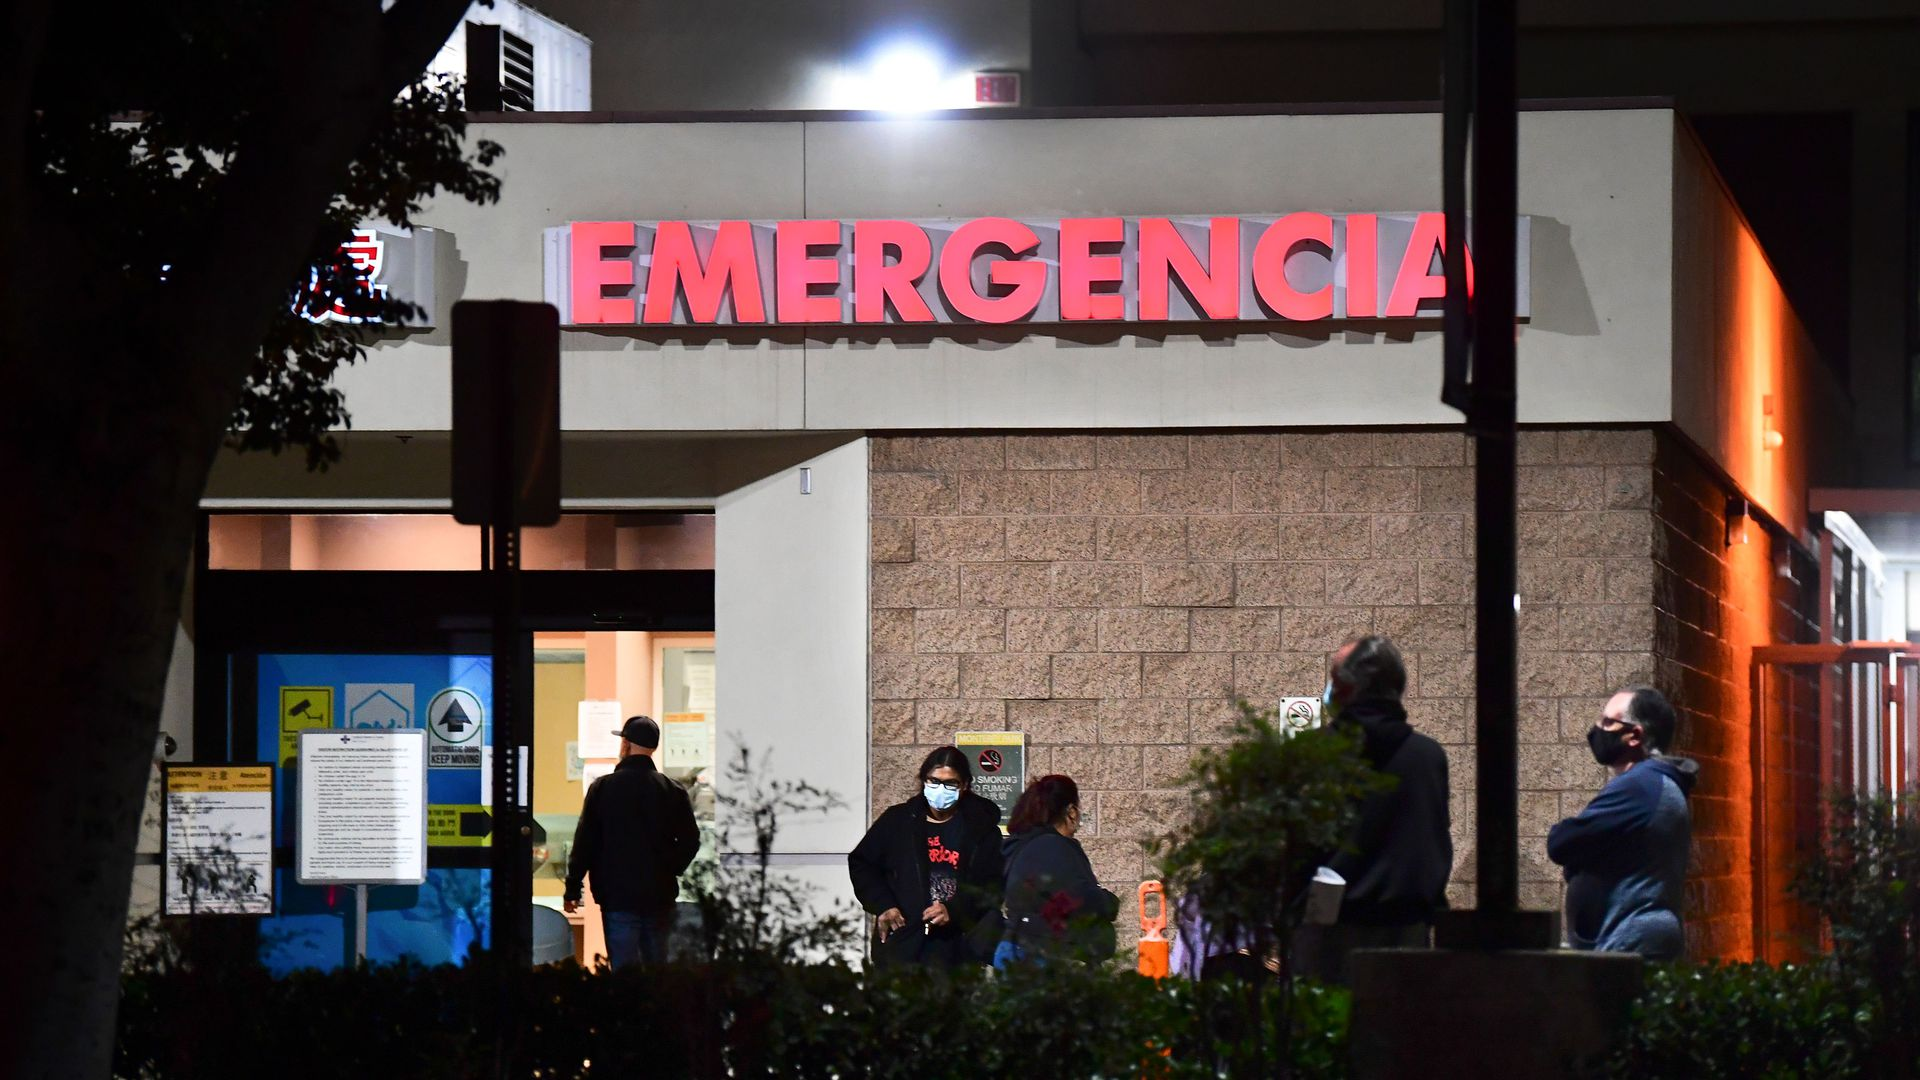 eople wait outside the Emergency room of the Garfield Medical Center in Monterey Park, California on December 1.